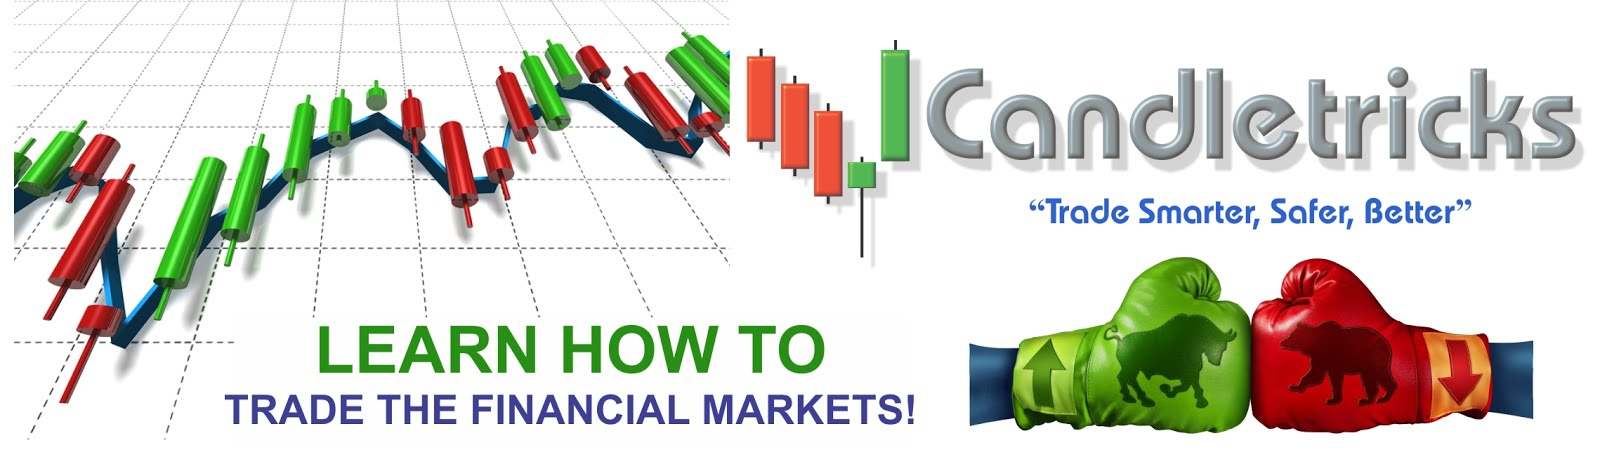 Candletricks - Stocks/Commodity/Forex/Futures/Options Technical Analysis Techniques by Kishore